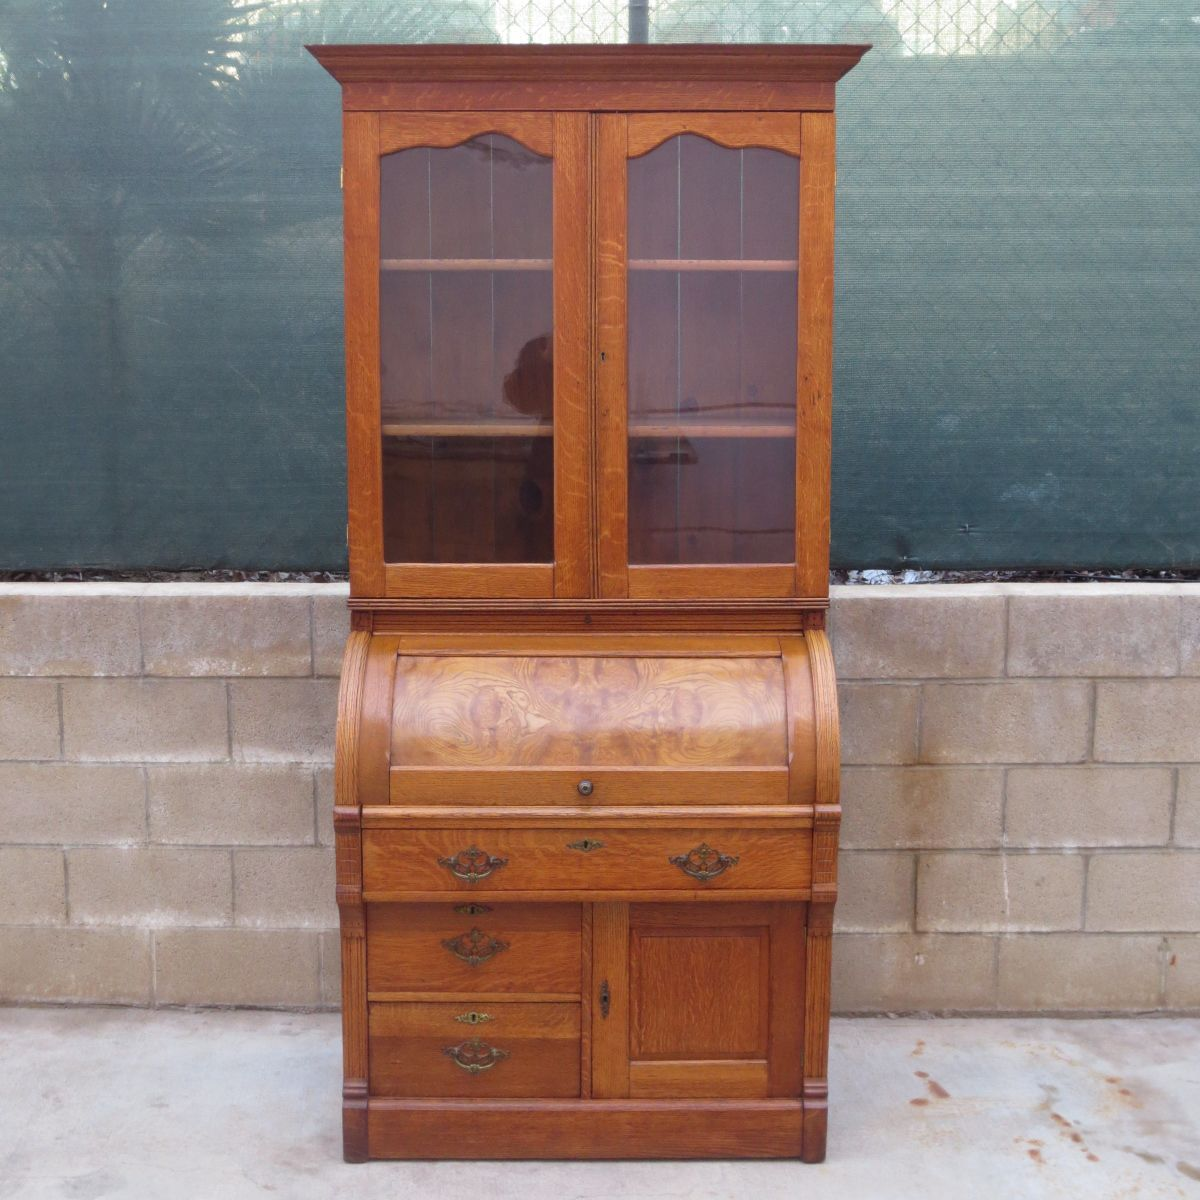 American Antique Barrel Desk Antique Bookcase Antique Desk Antique Furniture - American Antique Barrel Desk Antique Bookcase Antique Desk Antique